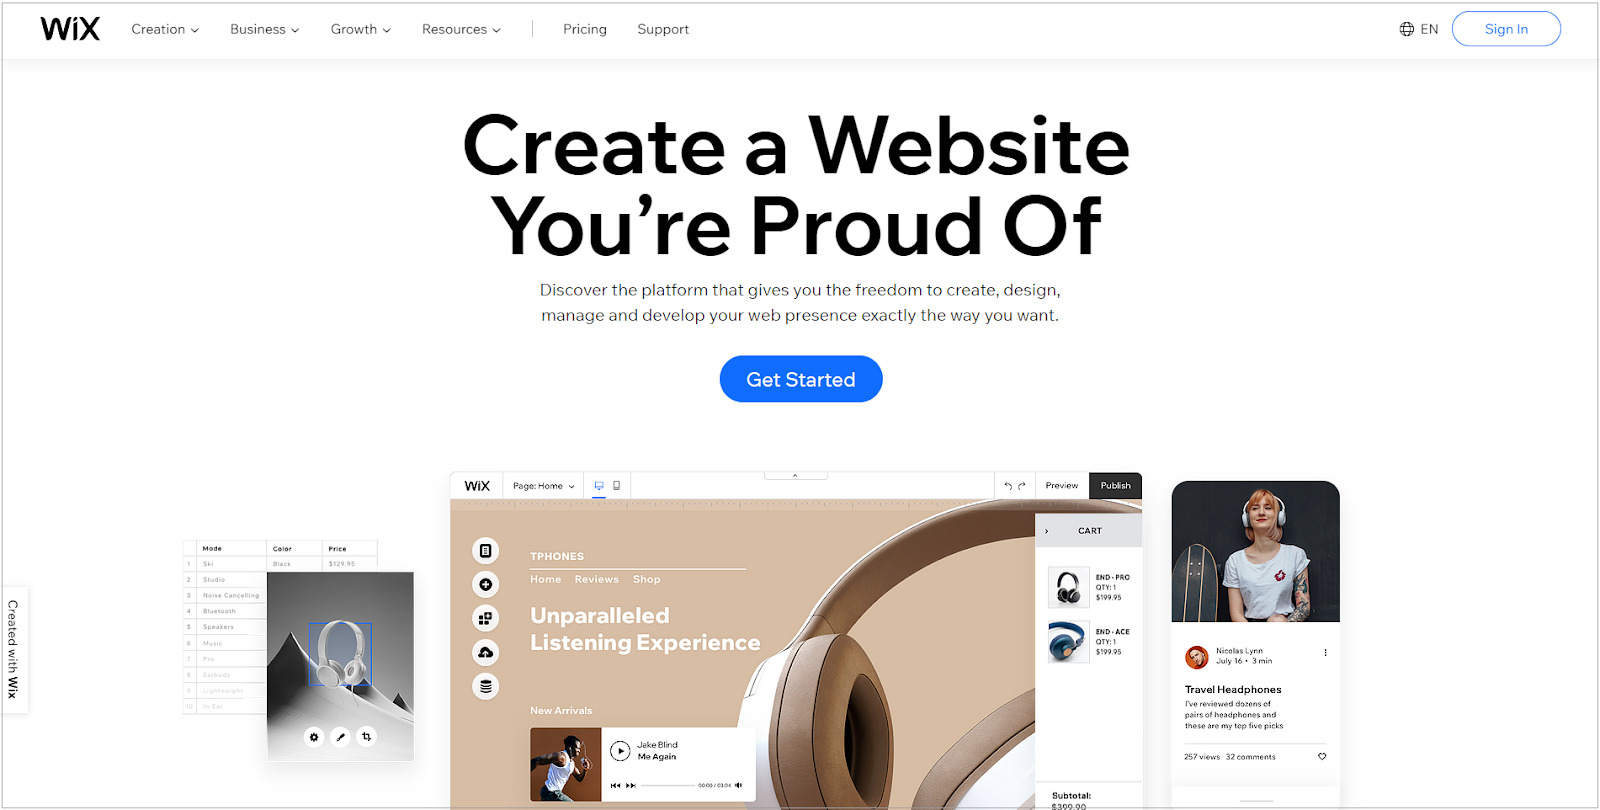 If you're a newbie in this eCommerce industry and want to be cost-effective, Wix is great of a choice